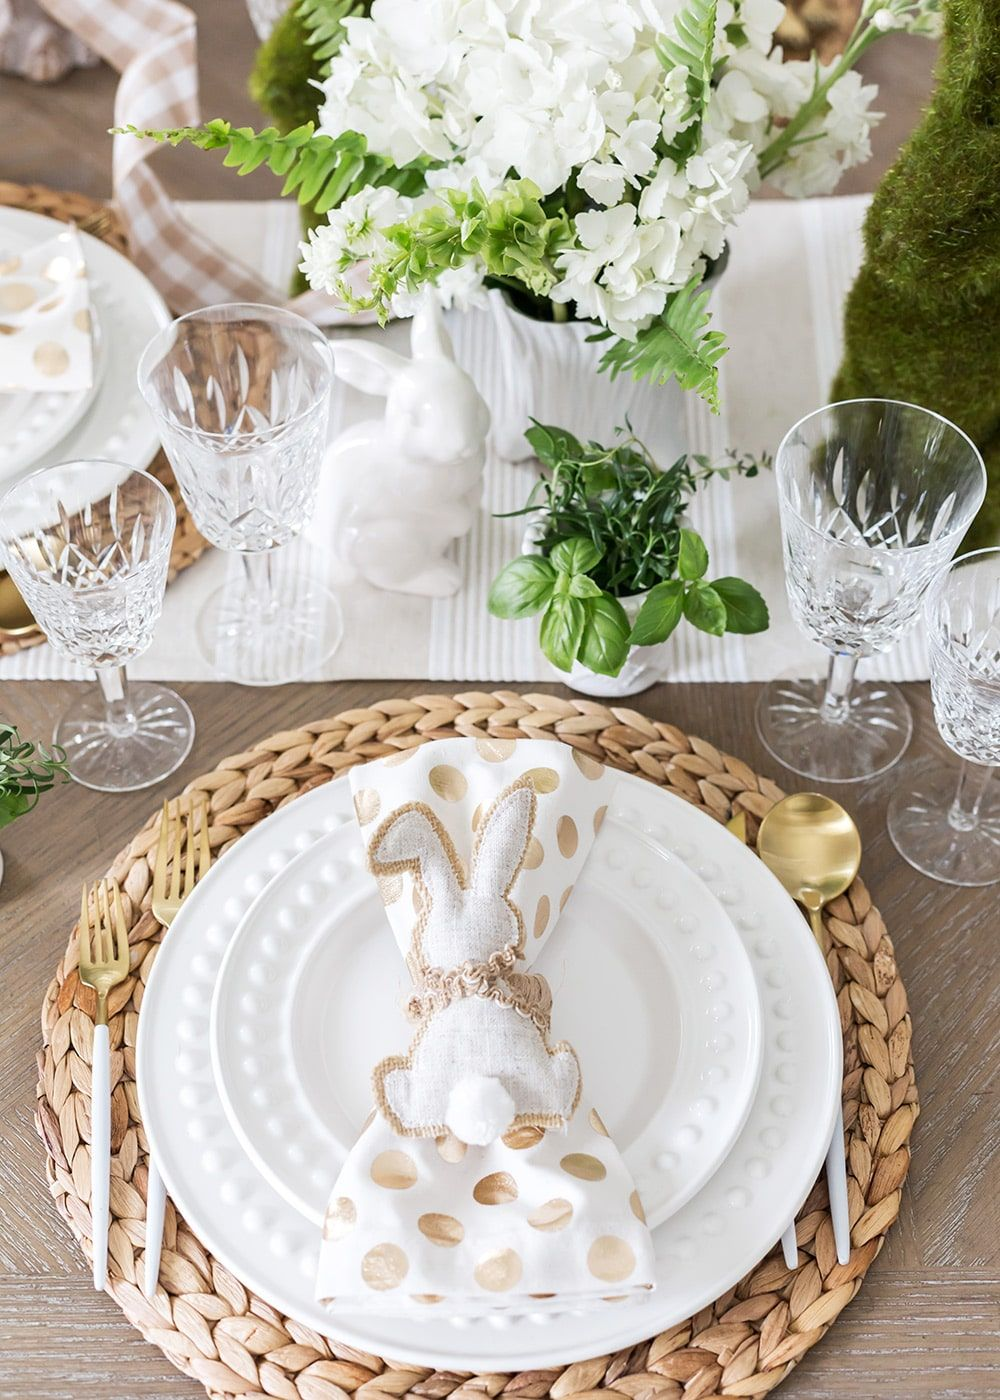 Set a Charming, Neutral Easter Table | Pizzazzerie